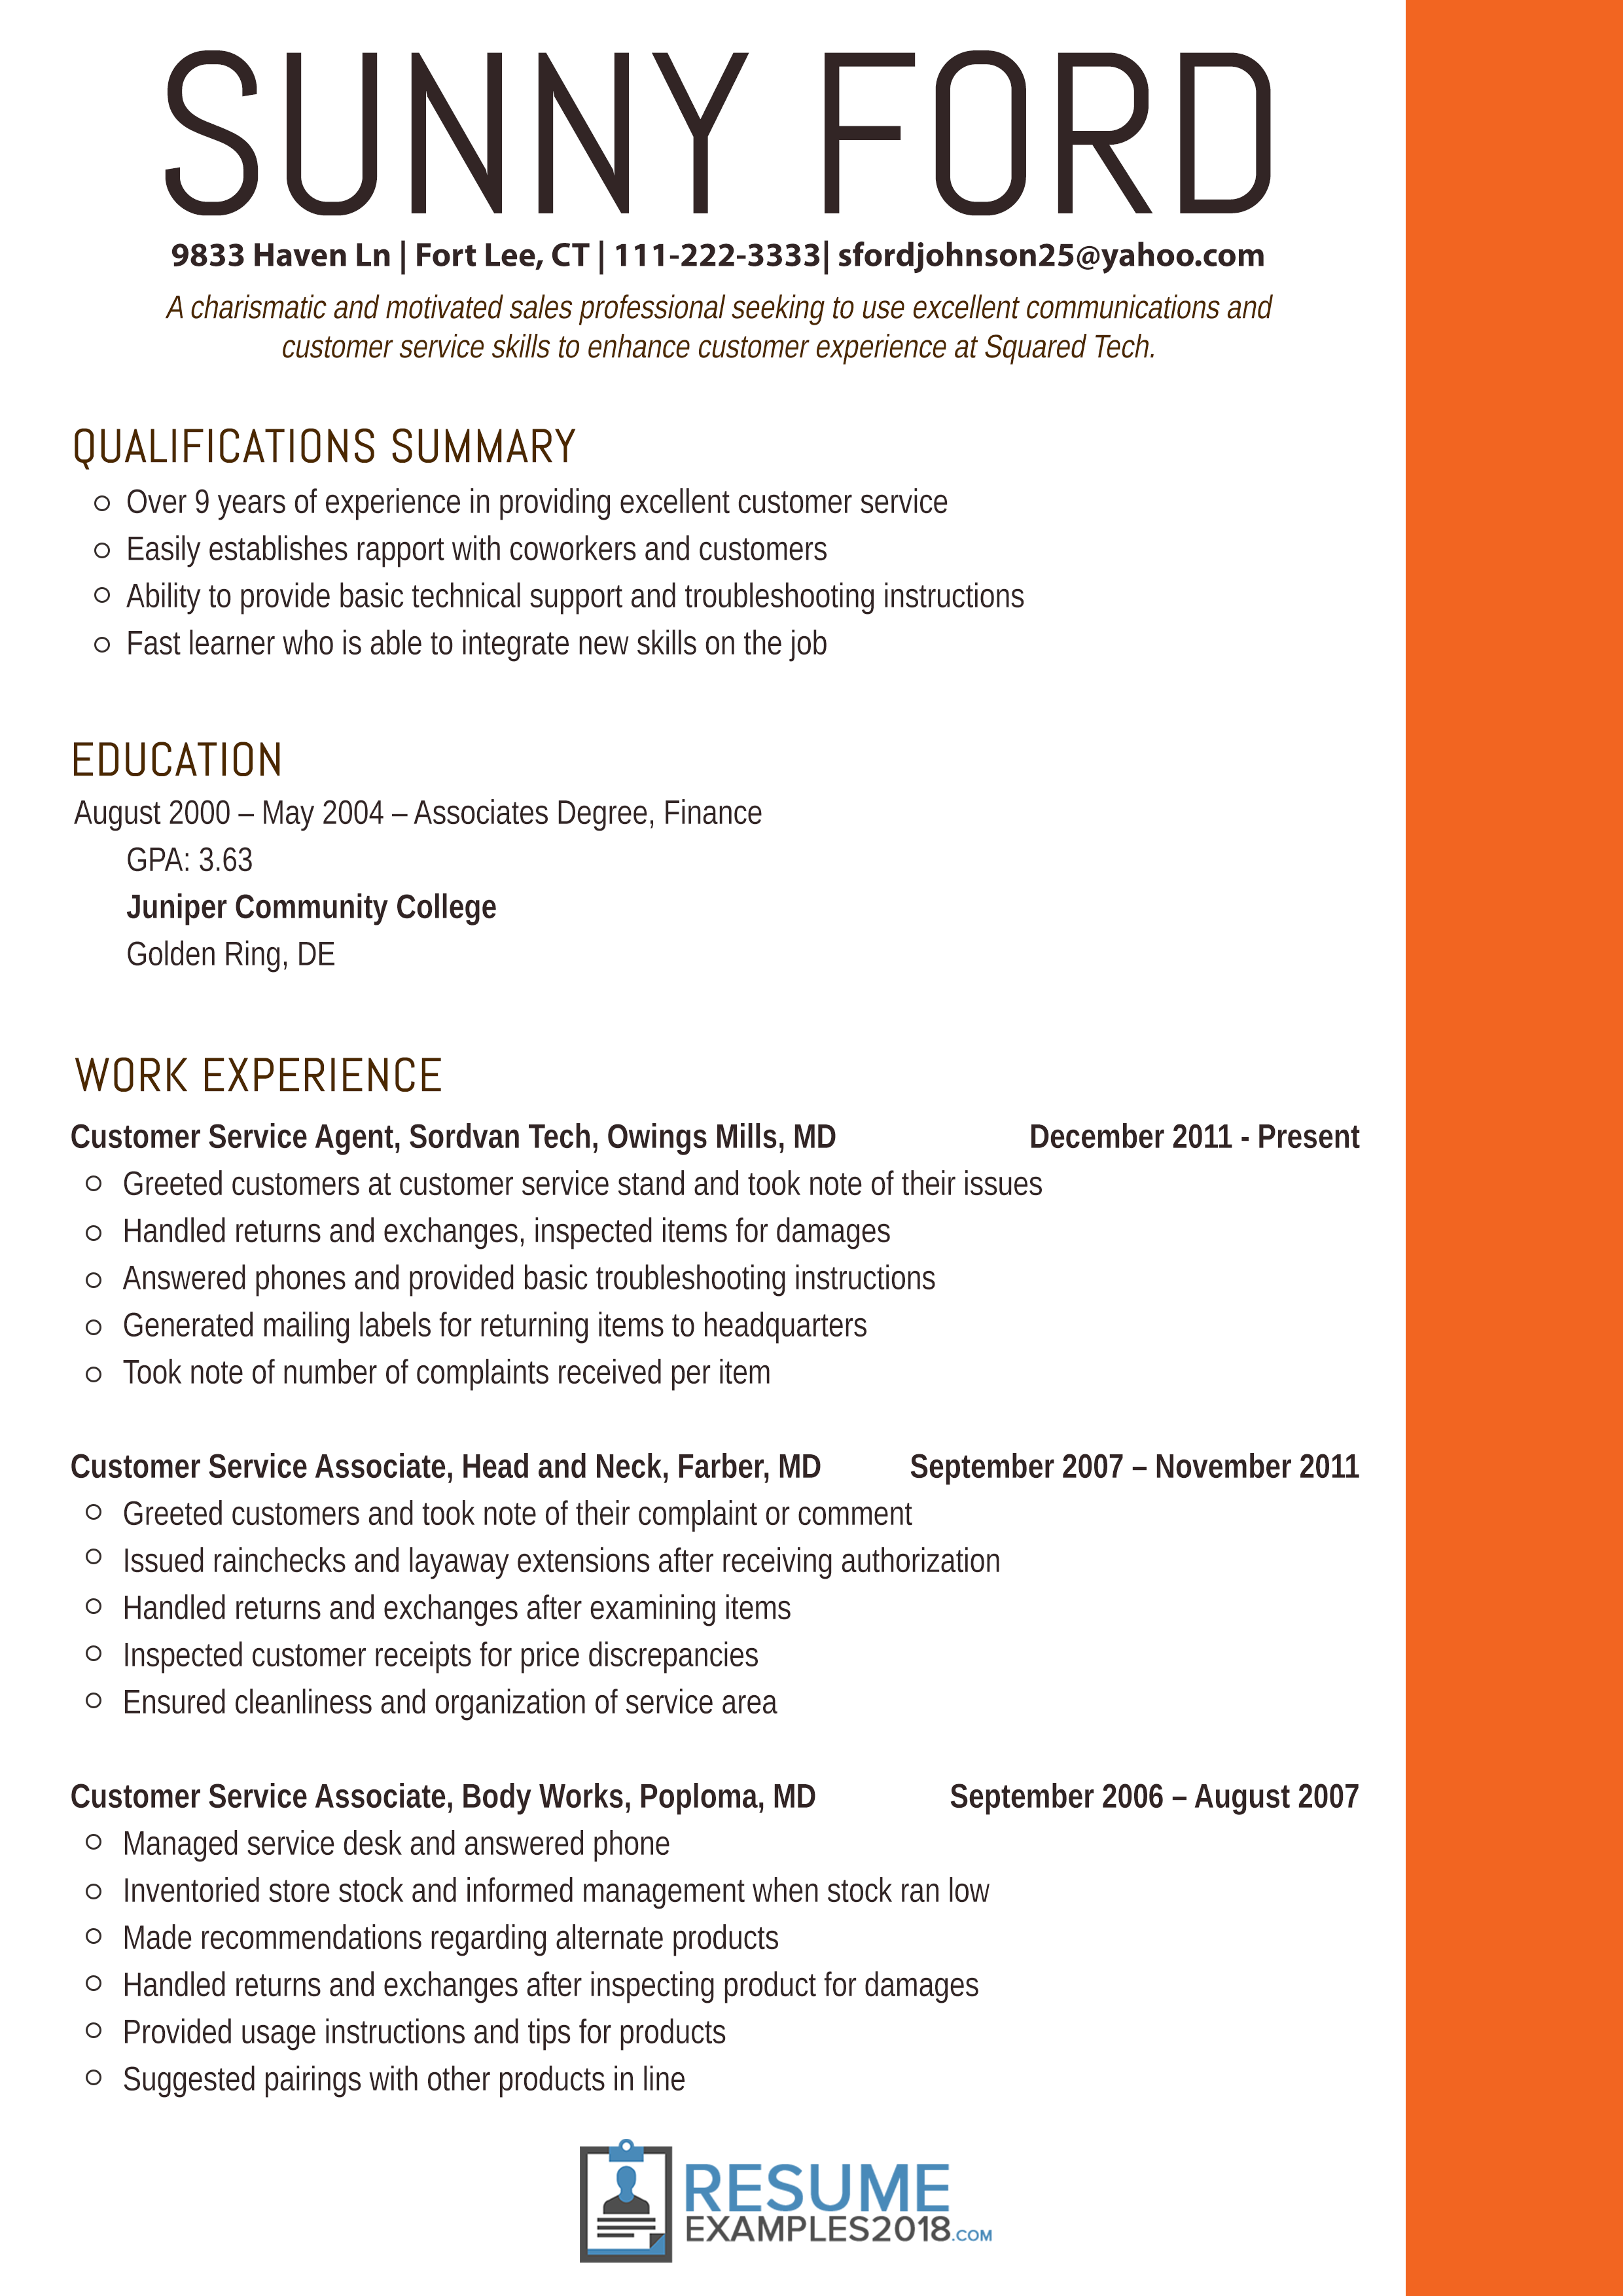 Resume Examples 2018 Customer Service